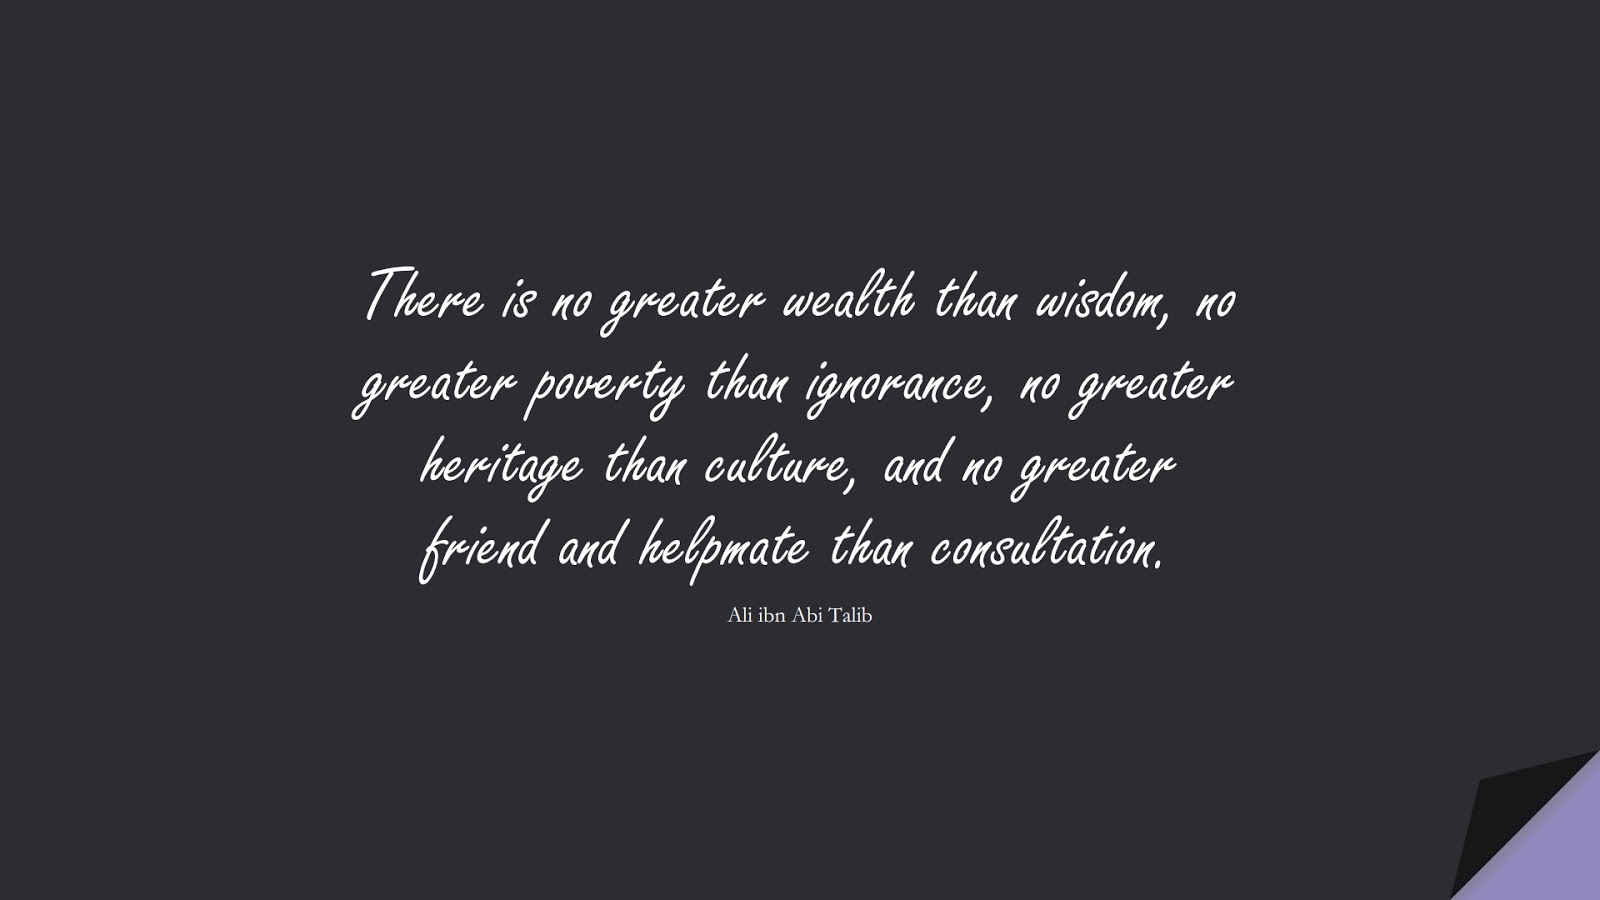 There is no greater wealth than wisdom, no greater poverty than ignorance, no greater heritage than culture, and no greater friend and helpmate than consultation. (Ali ibn Abi Talib);  #AliQuotes